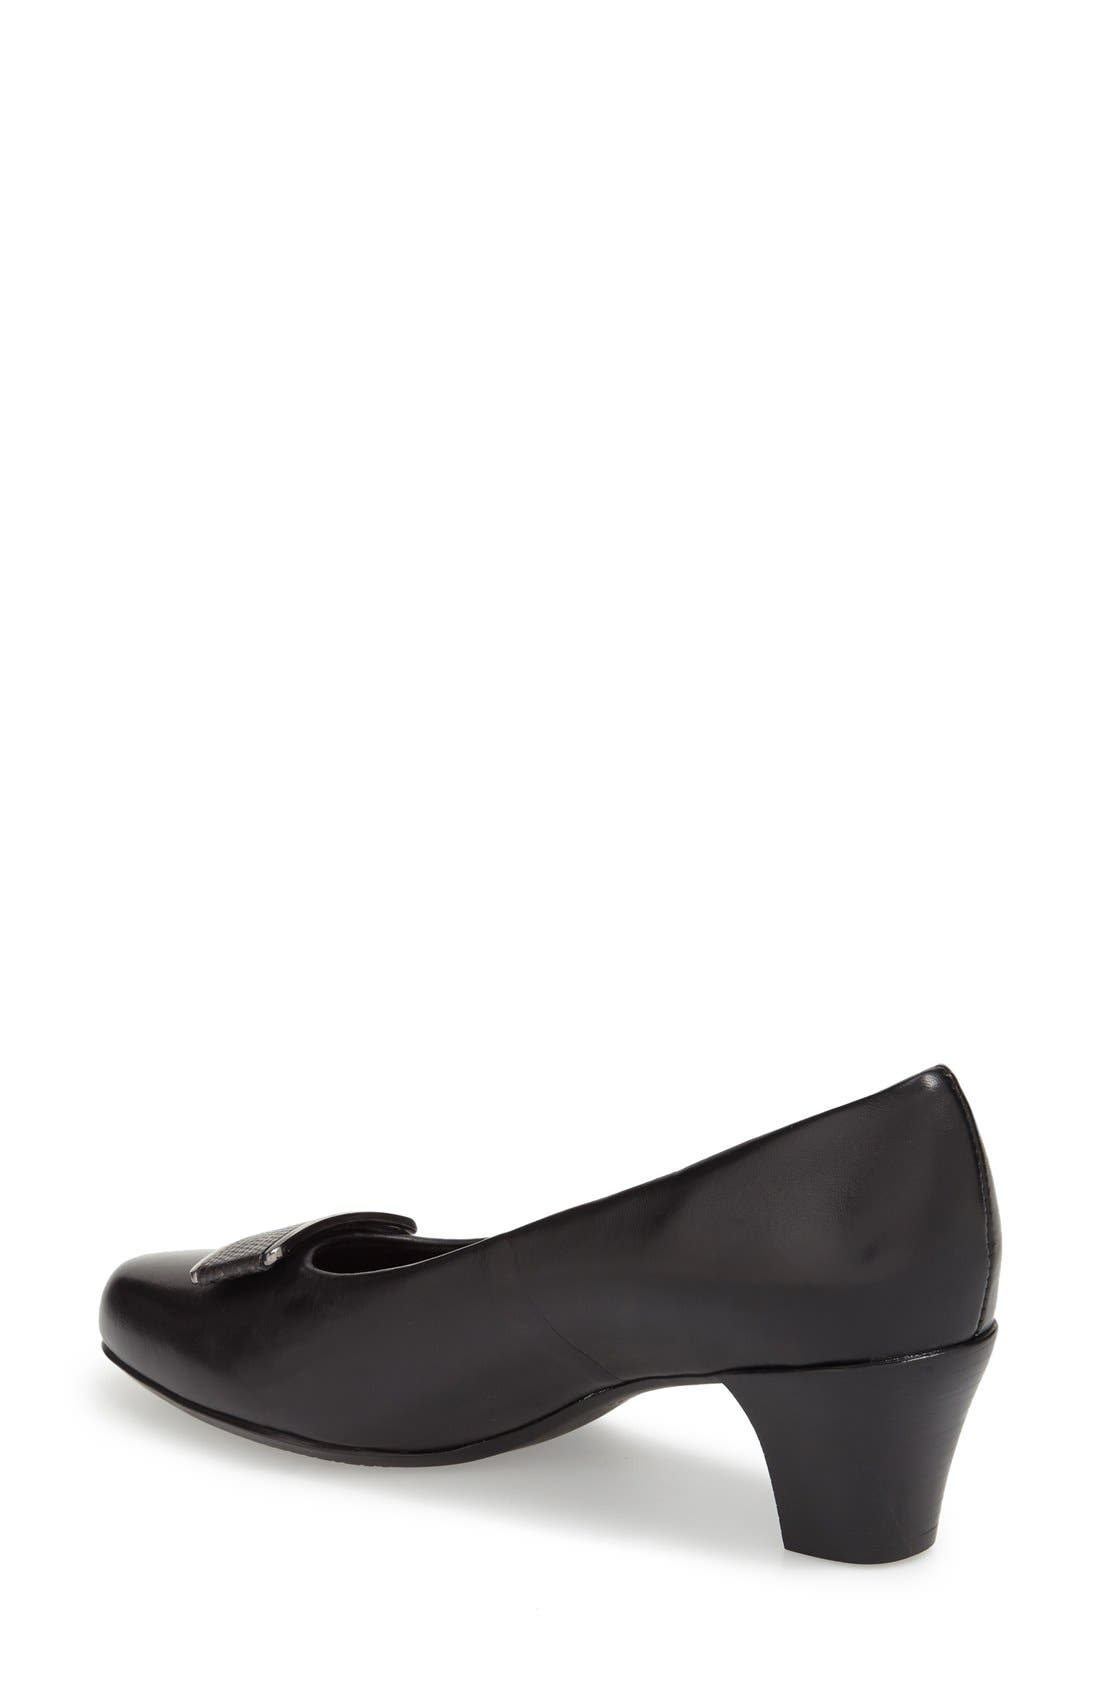 Alternate Image 2  - Munro 'Mara' Block Heel Pump (Women)